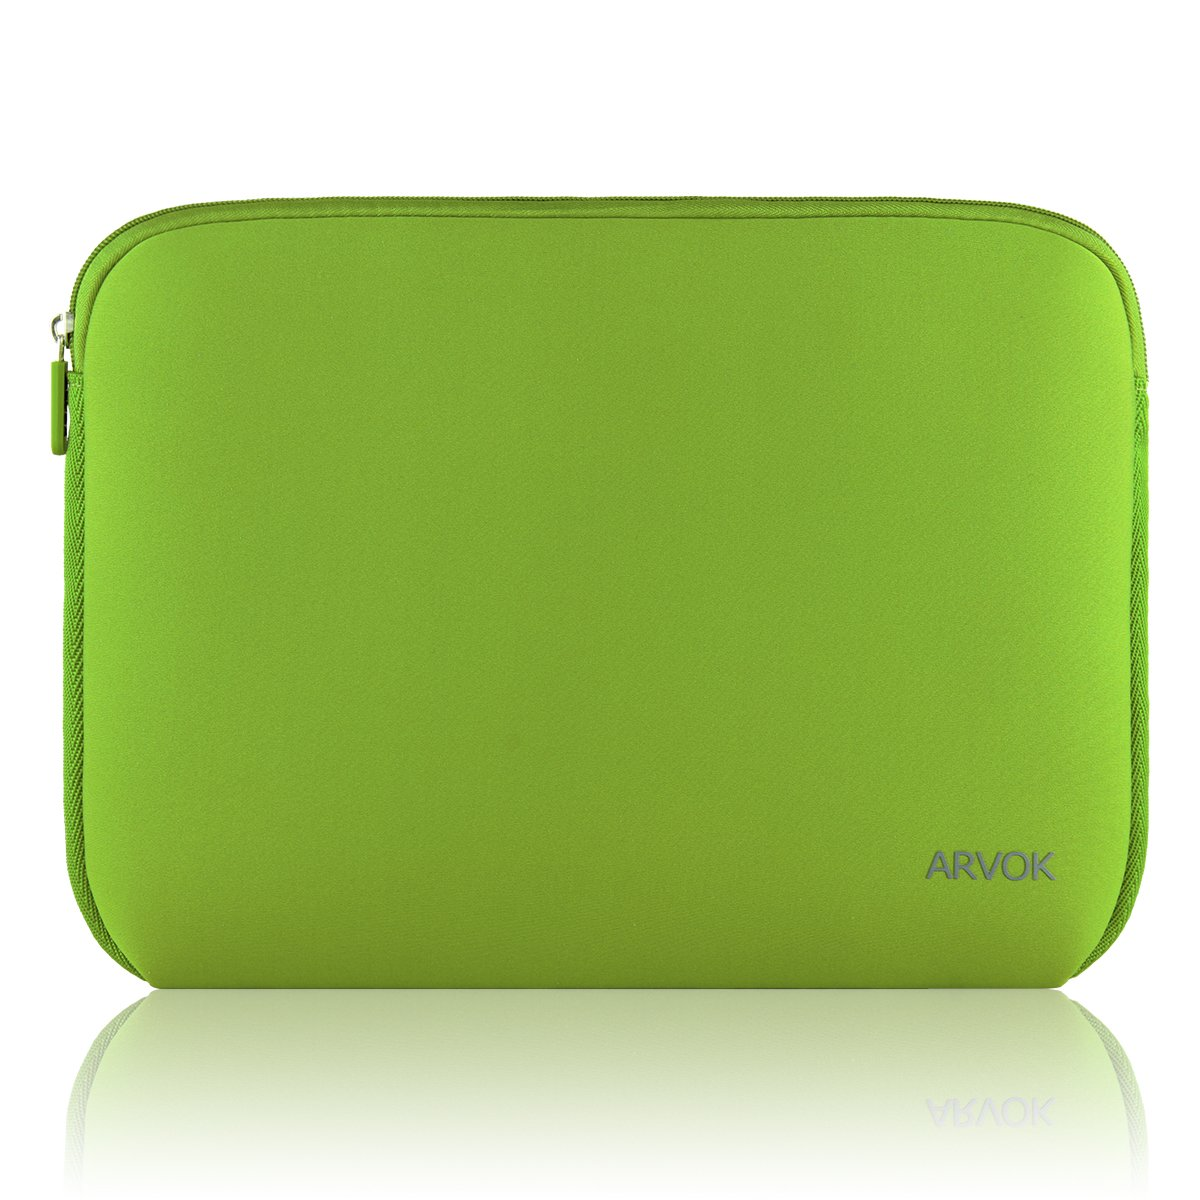 Arvok 15-15.6 Inch Laptop Sleeve Multi-Color & Size Choices Case/Water-Resistant Neoprene Notebook Computer Pocket Tablet Briefcase Carrying Bag/Pouch Skin Cover for Asus/Dell/Lenovo/HP, Bamboo Green